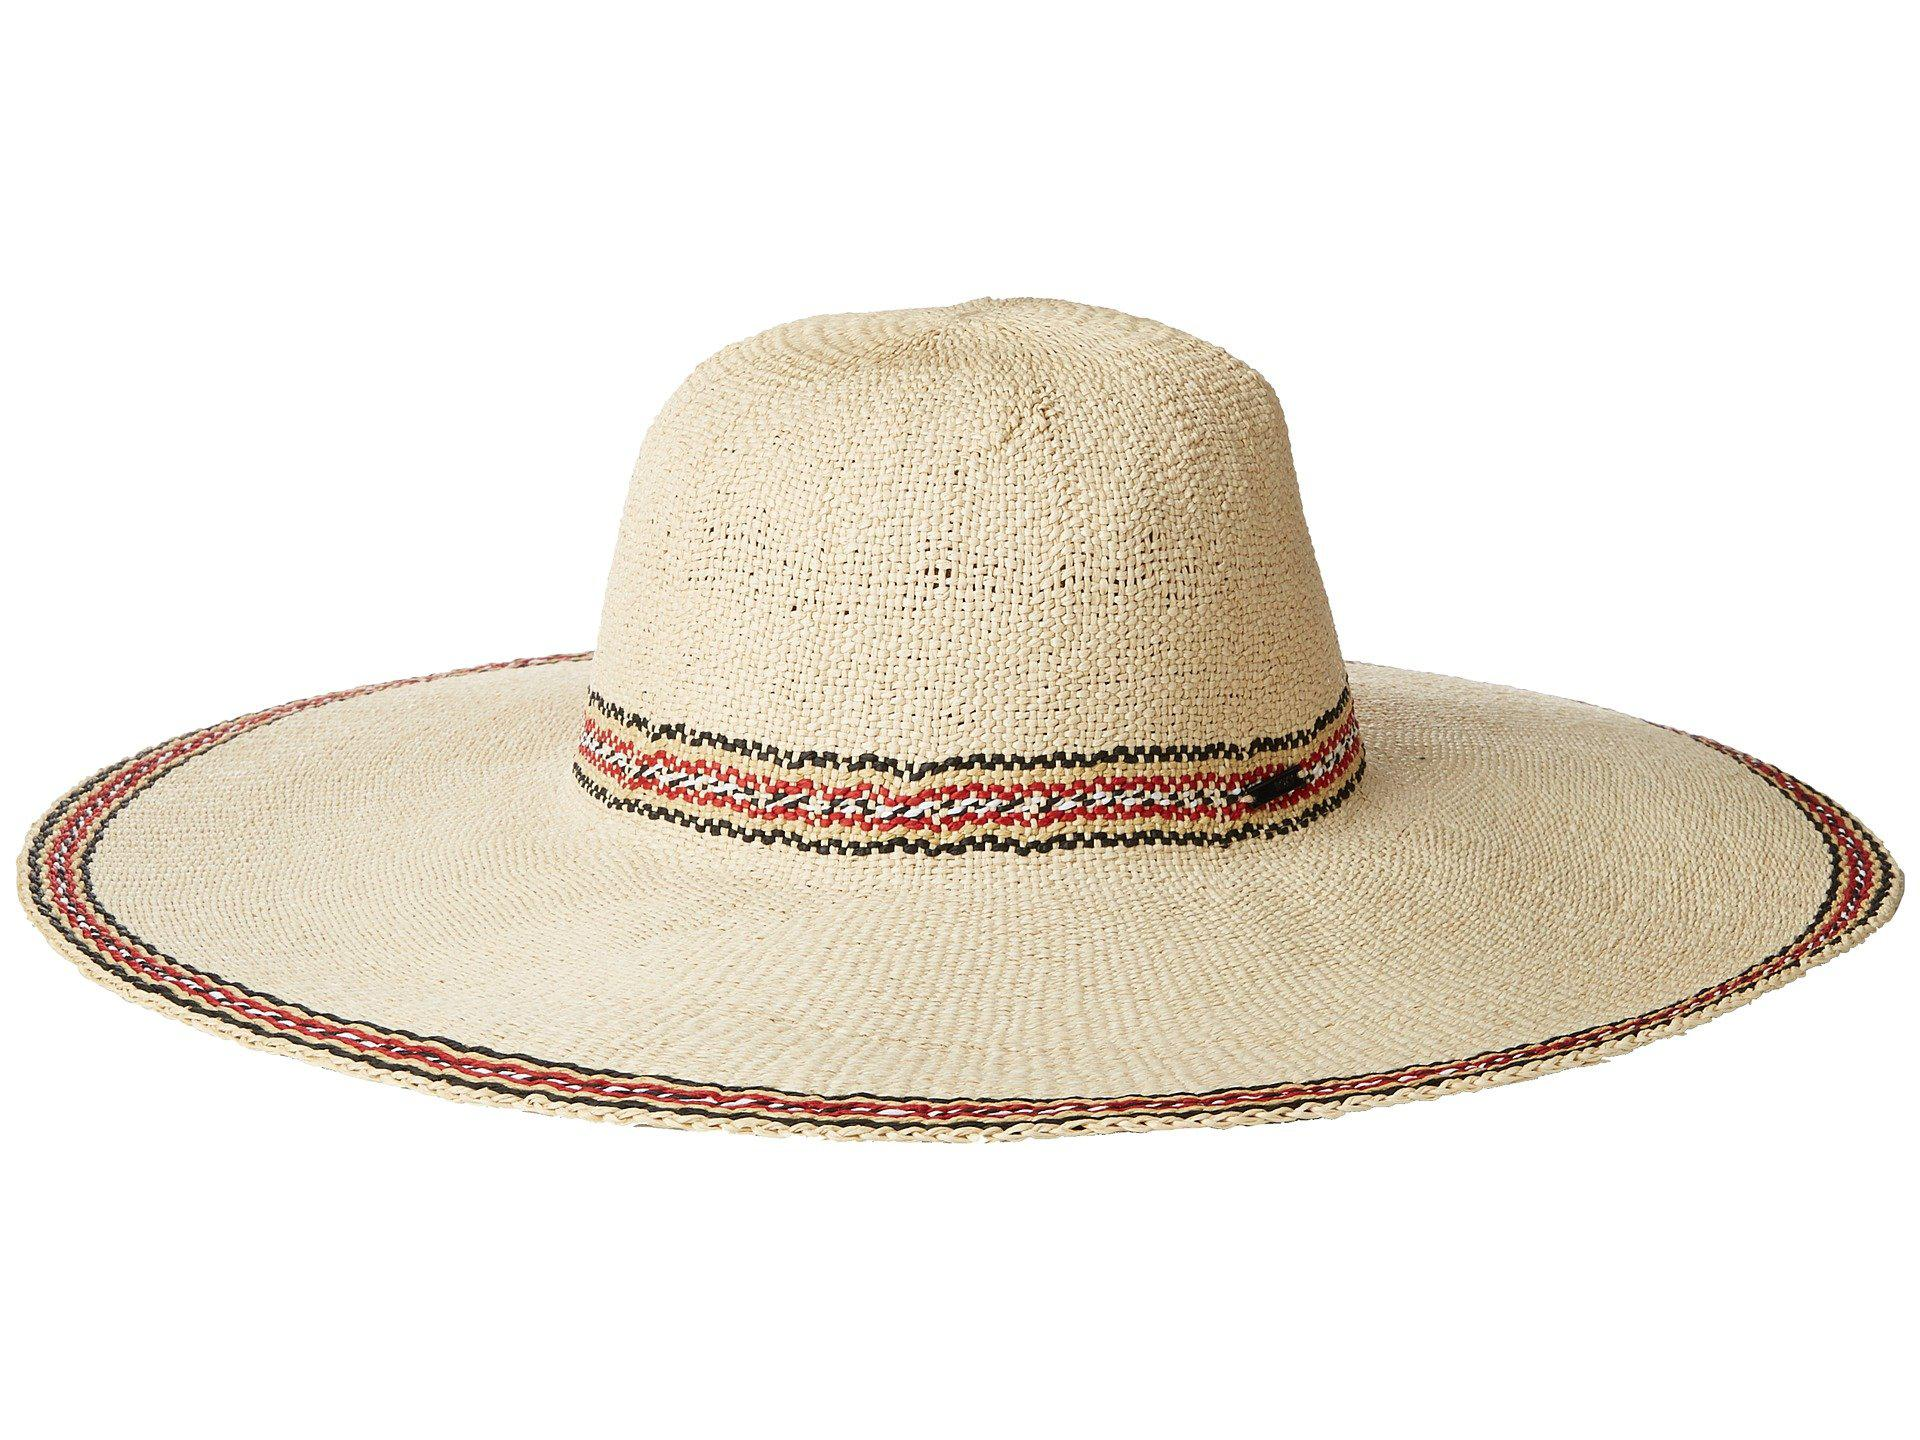 0522e8c2cee Lyst - Roxy Under The Coconuts (natural) Traditional Hats in Natural